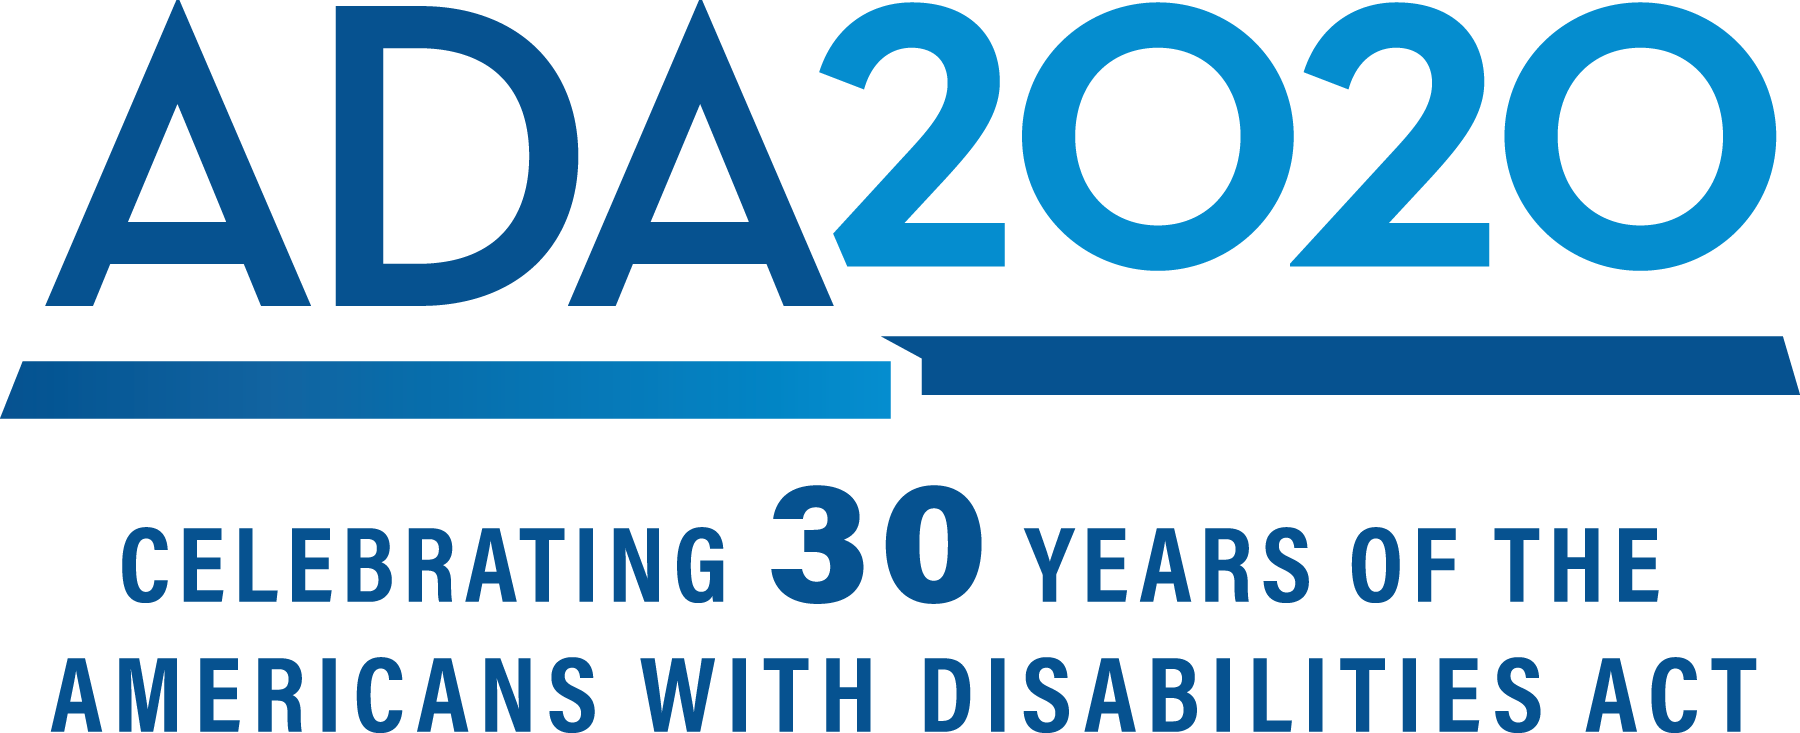 ADA 2020 Celebrating 30 years of the Americans with Disabilities Act logo